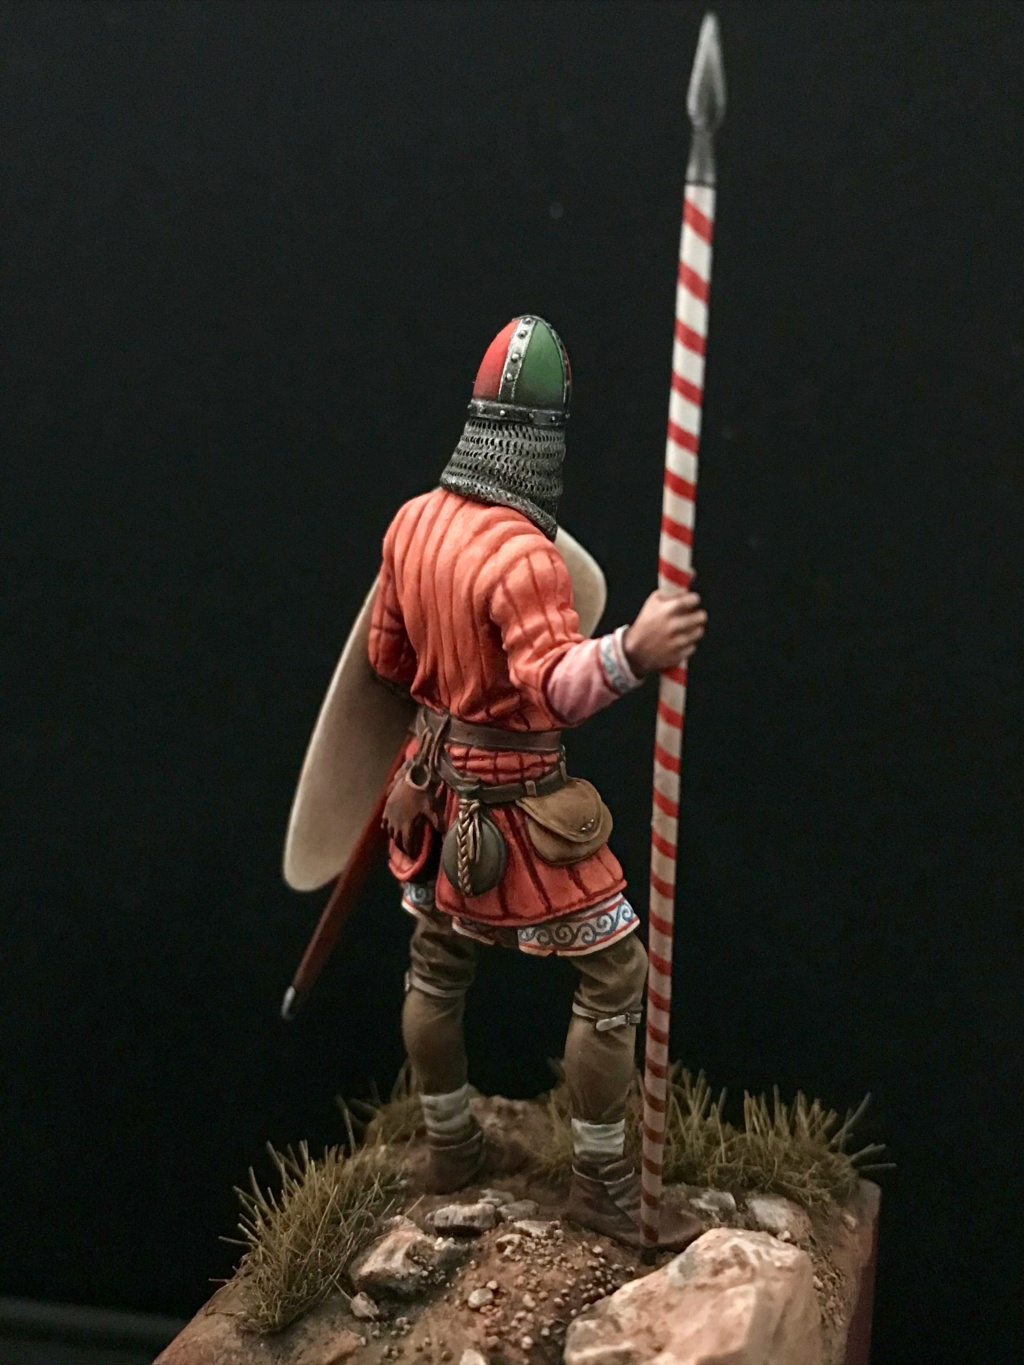 GUERRIER NORMAND - BATAILLE D'HASTINGS 1066 Img_3213